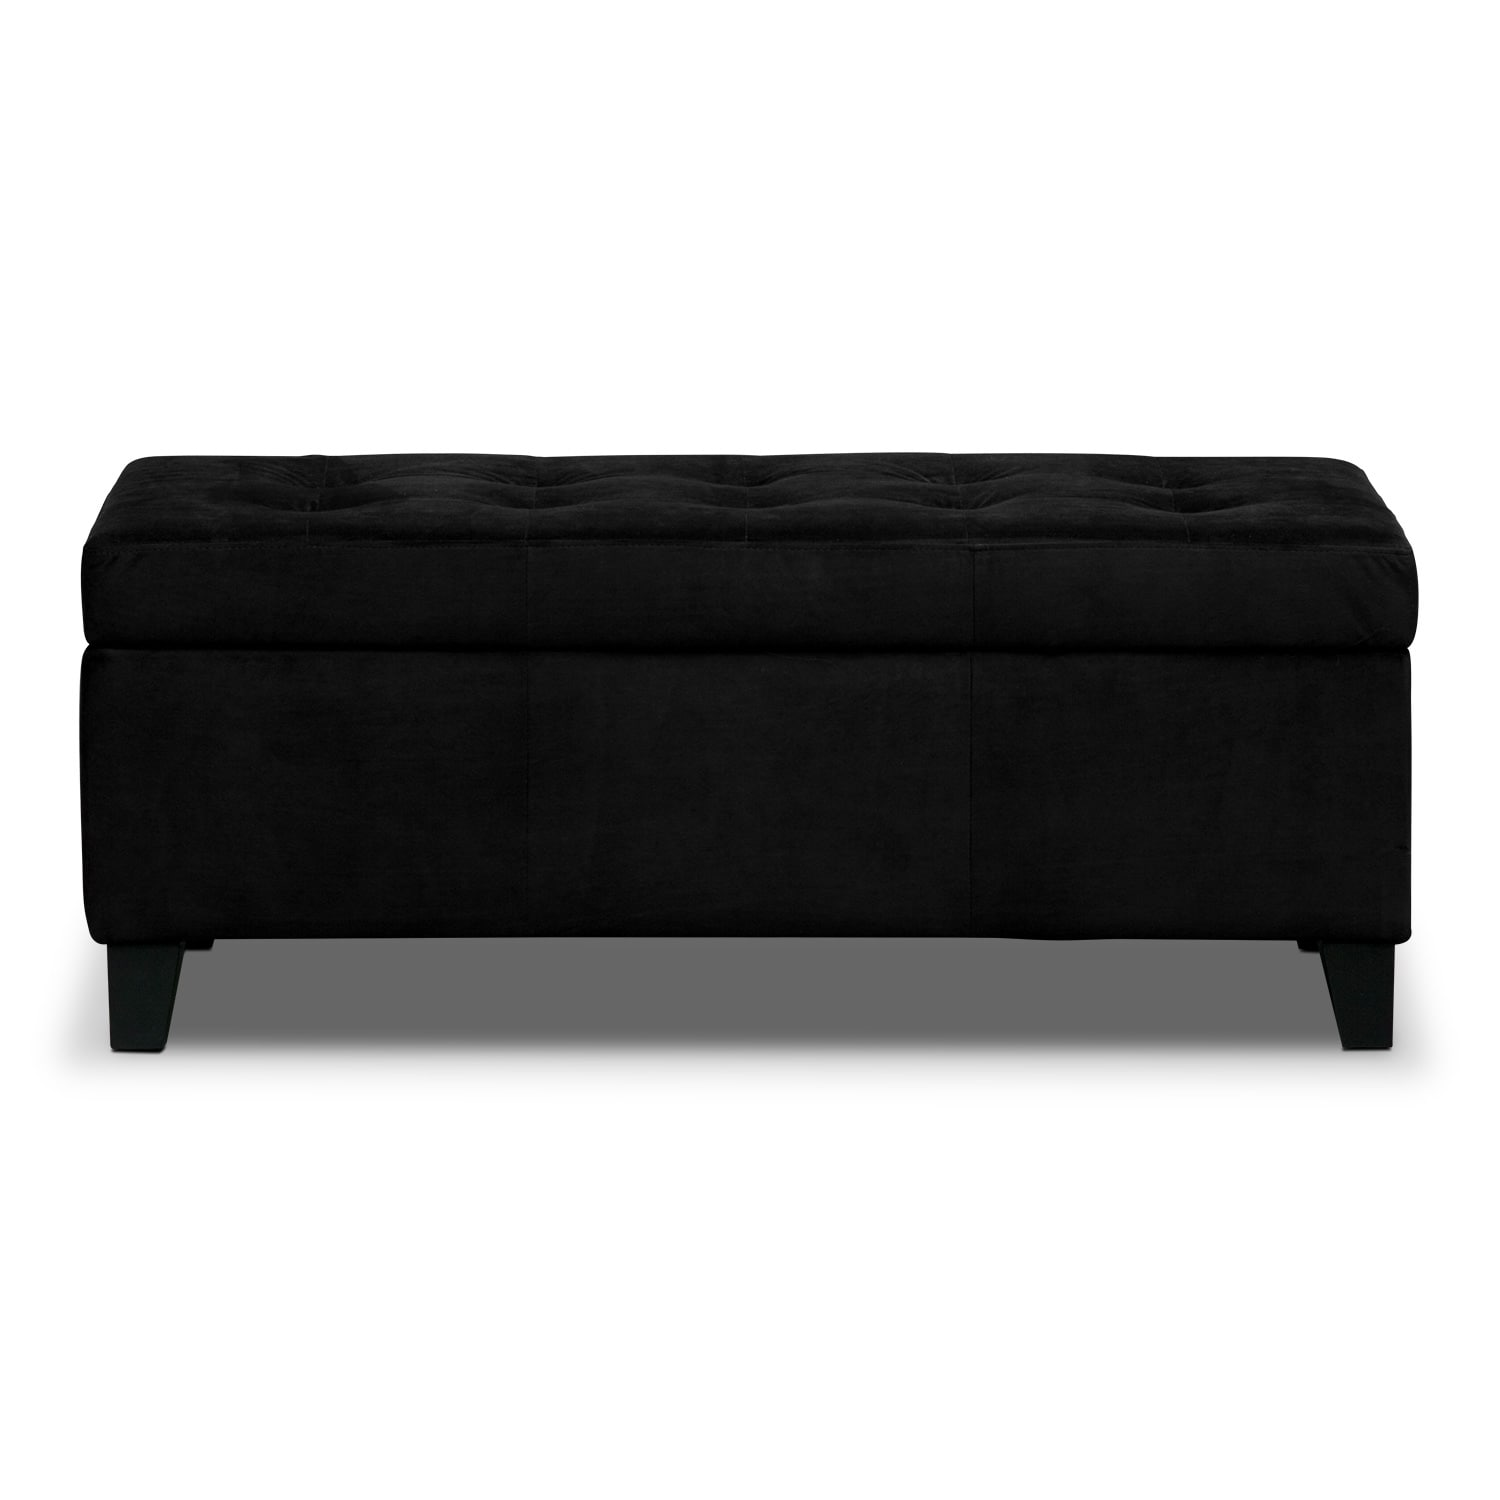 valerie storage bench  black  american signature furniture - click to change image